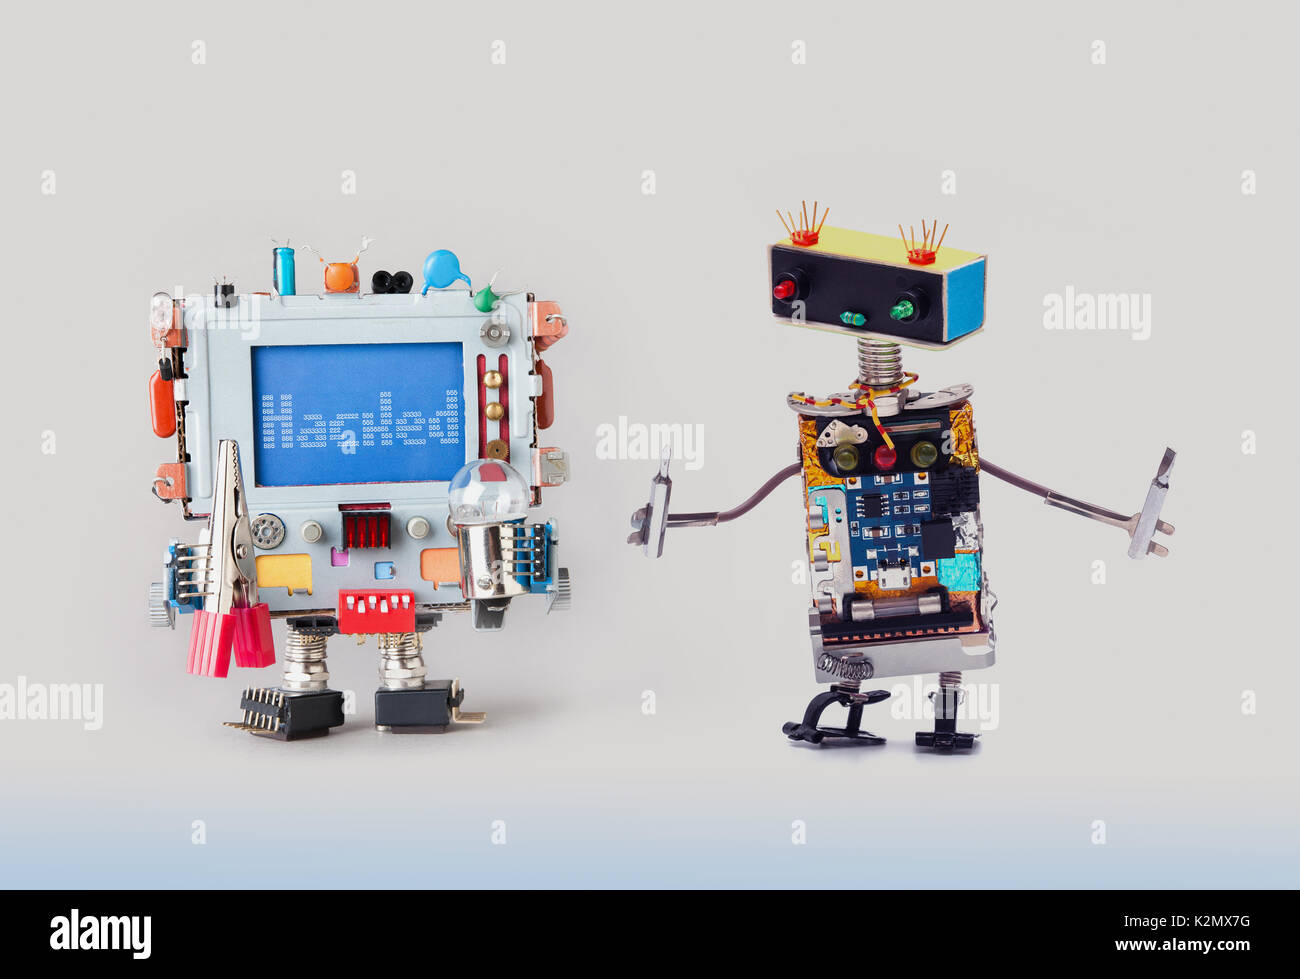 Cyber crime concept. IT specialist robot serviceman with screwdrivers looking at colorful computer. Alert warning message Hacked on blue display. Gray gradient background - Stock Image